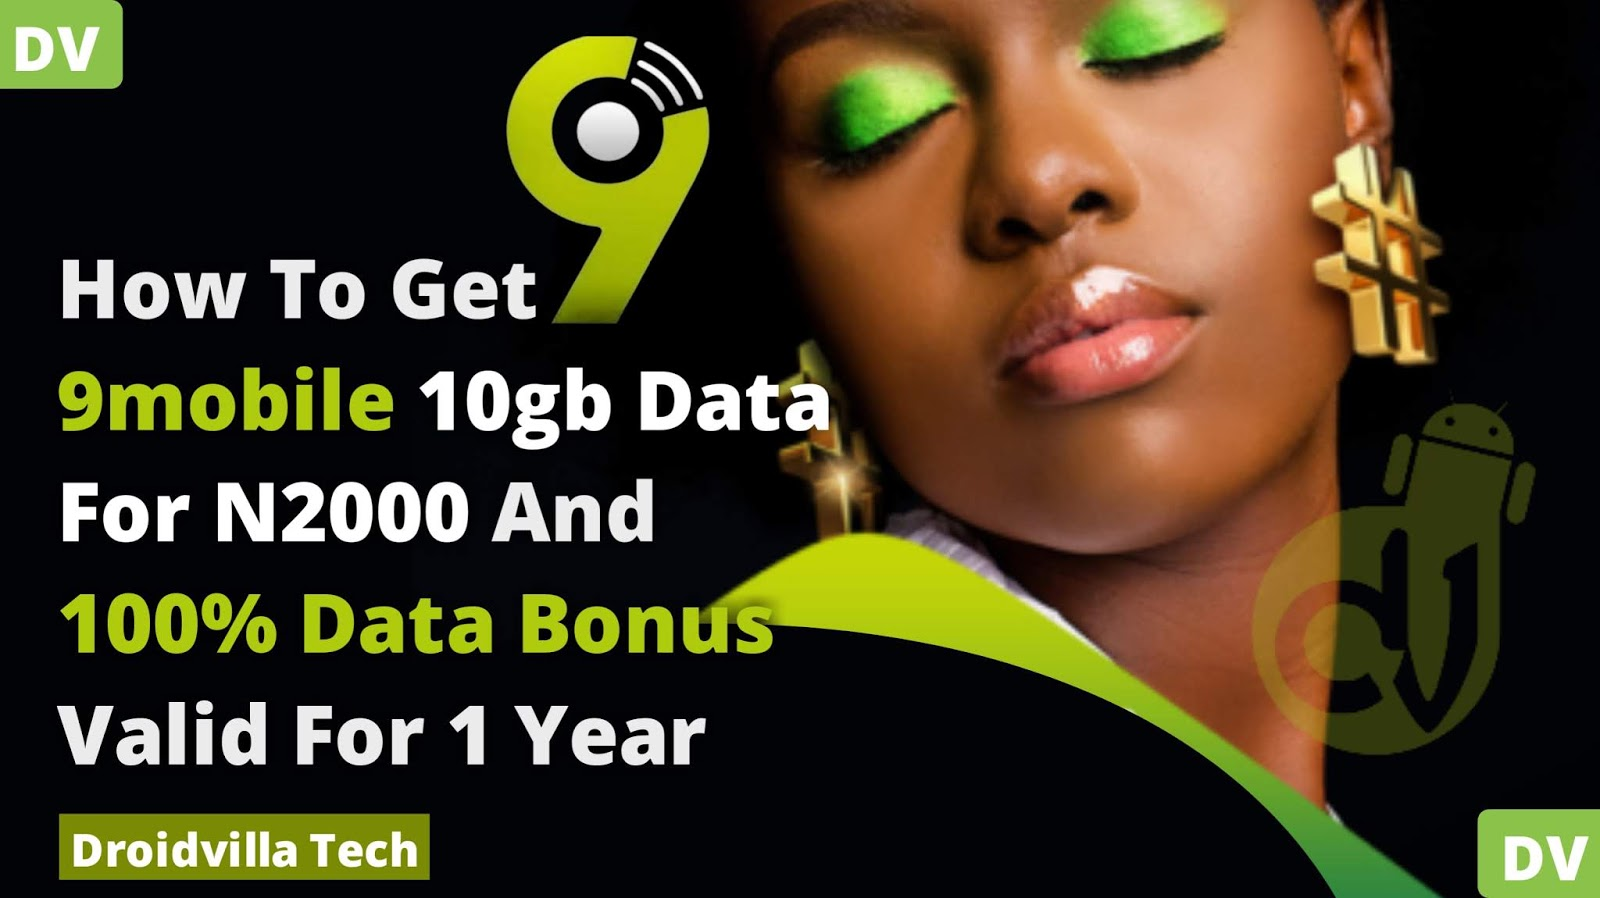 9mobile 10gb data n2000